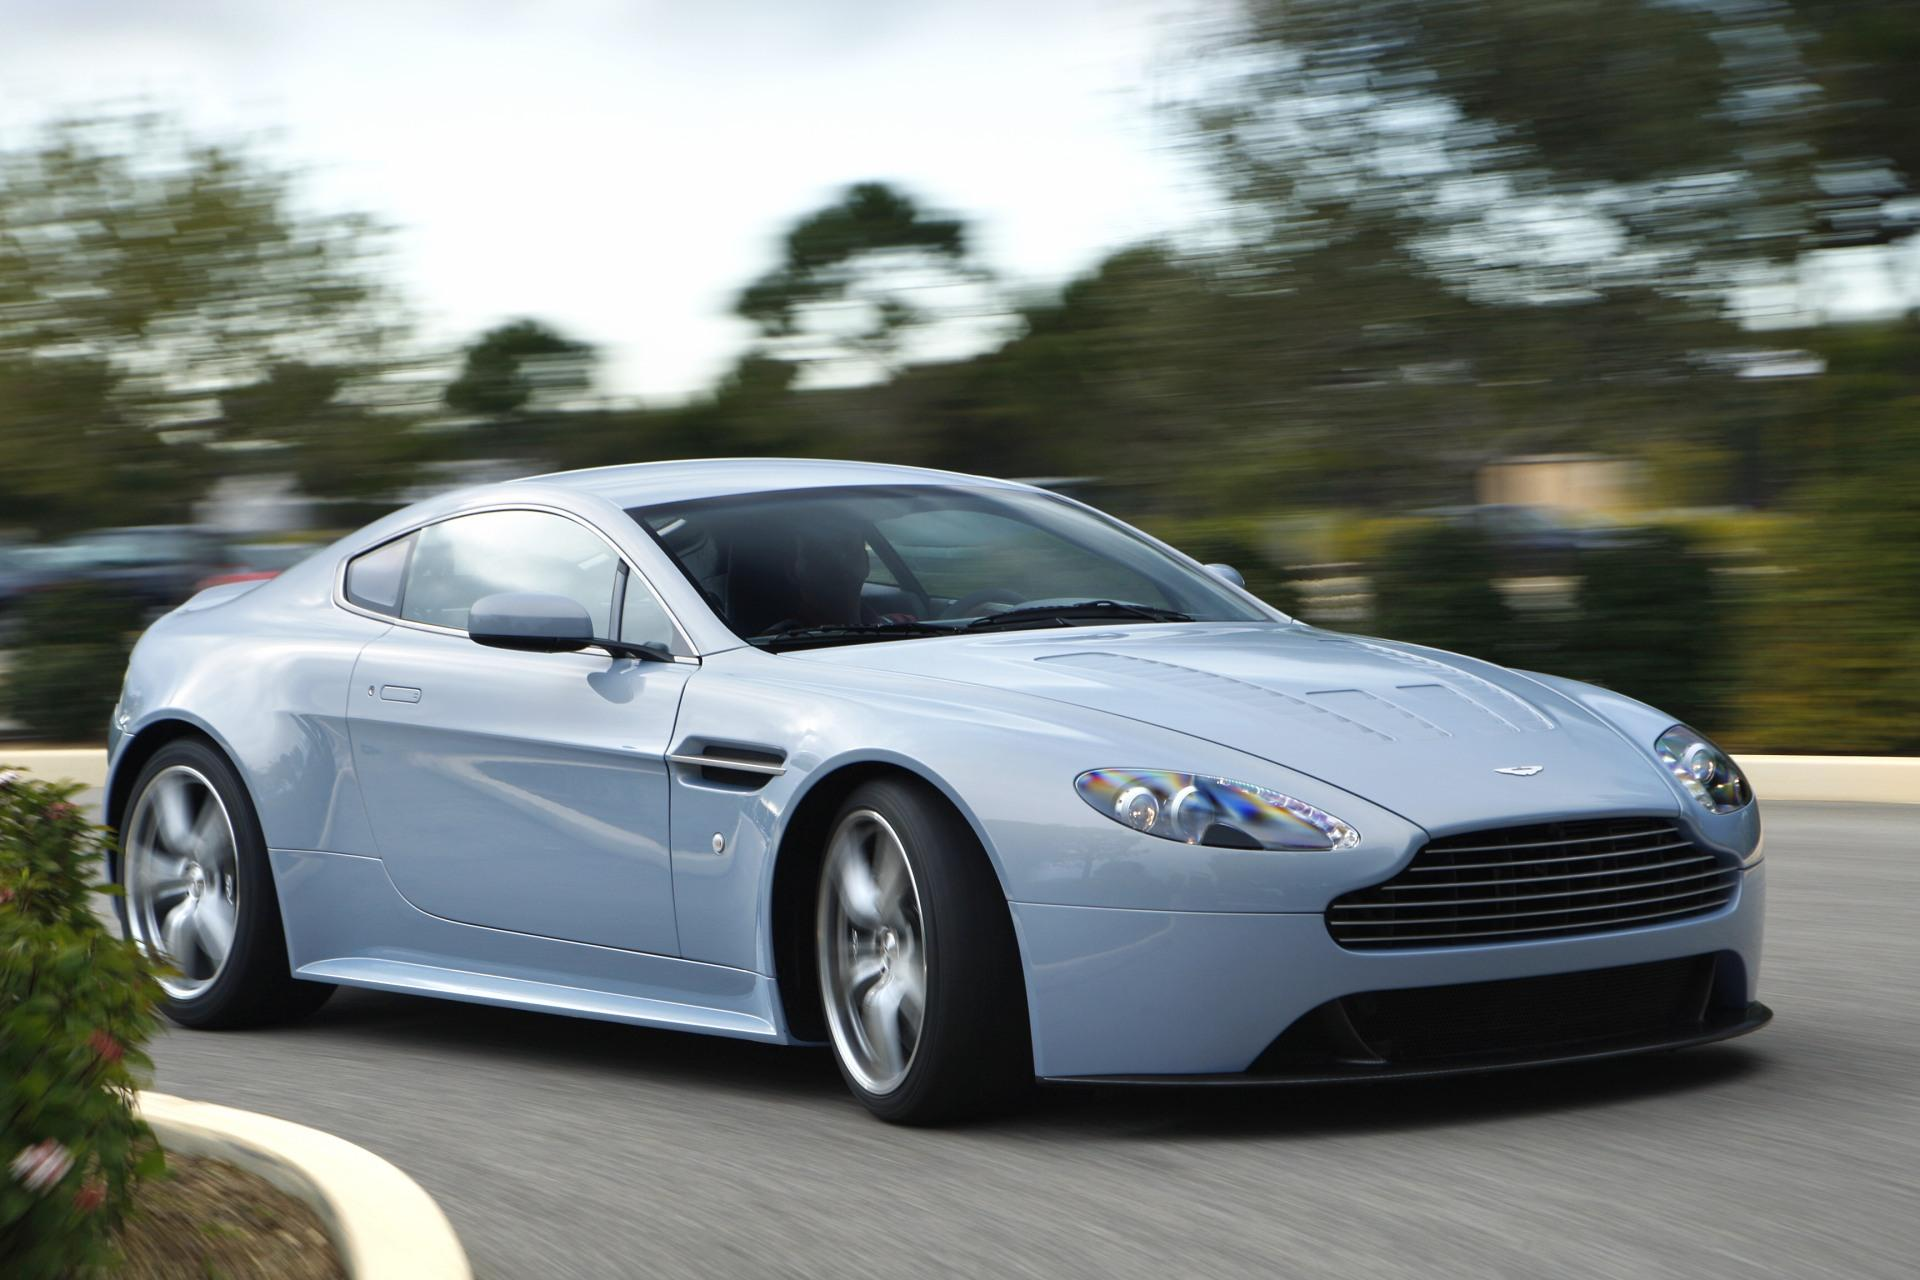 2007 Aston Martin V12 Vantage RS Concept photo - 2